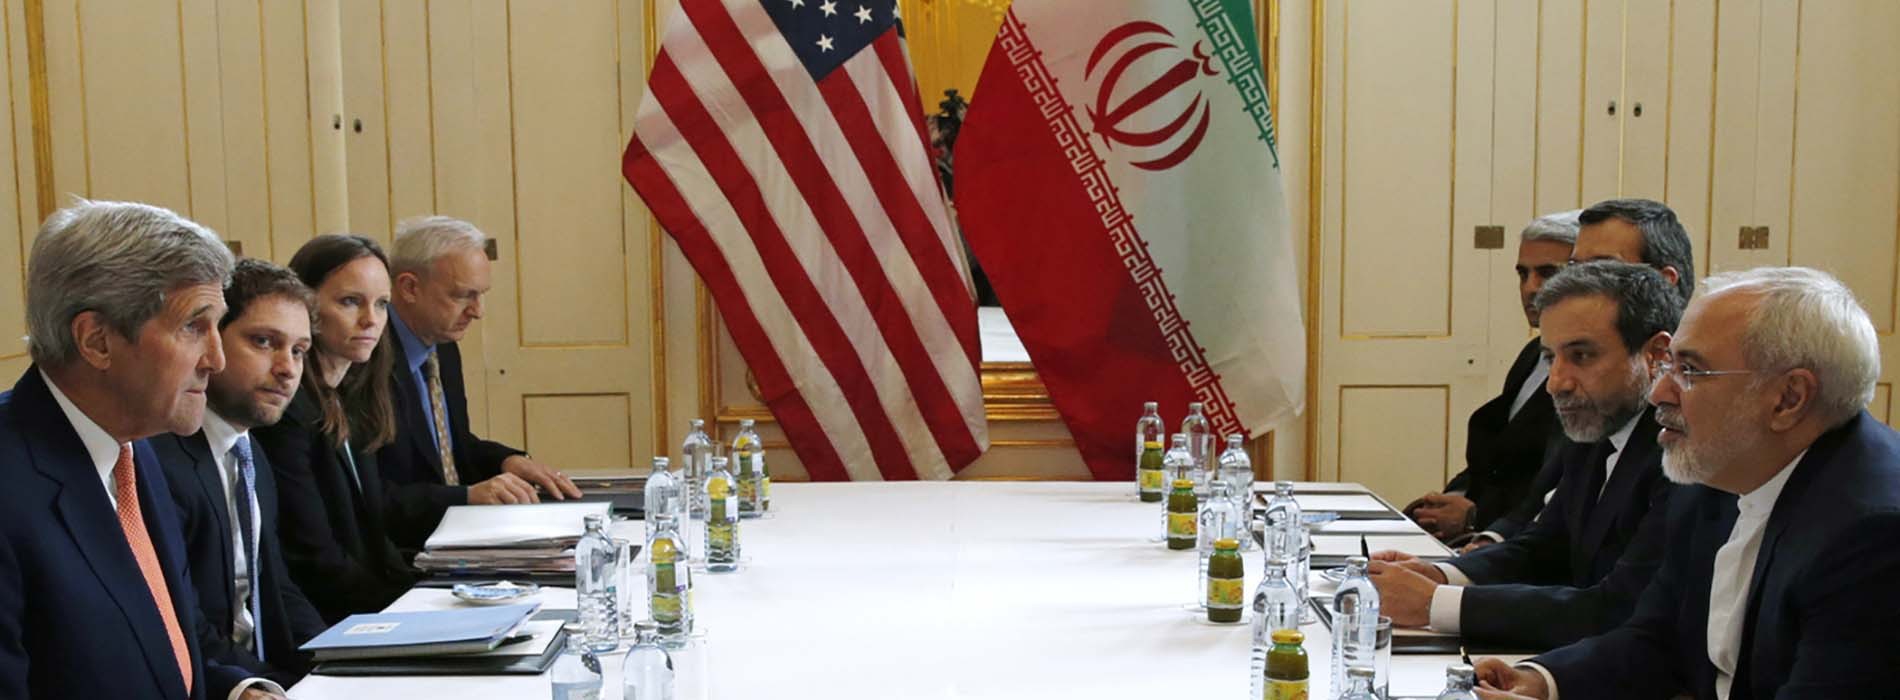 U.S. Secretary of State John Kerry (left) meets with Iranian Foreign Minister Mohammad Javad Zarif (right) in Vienna on Saturday. The International Atomic Energy Agency, or IAEA, has verified that Iran has met all conditions under the nuclea